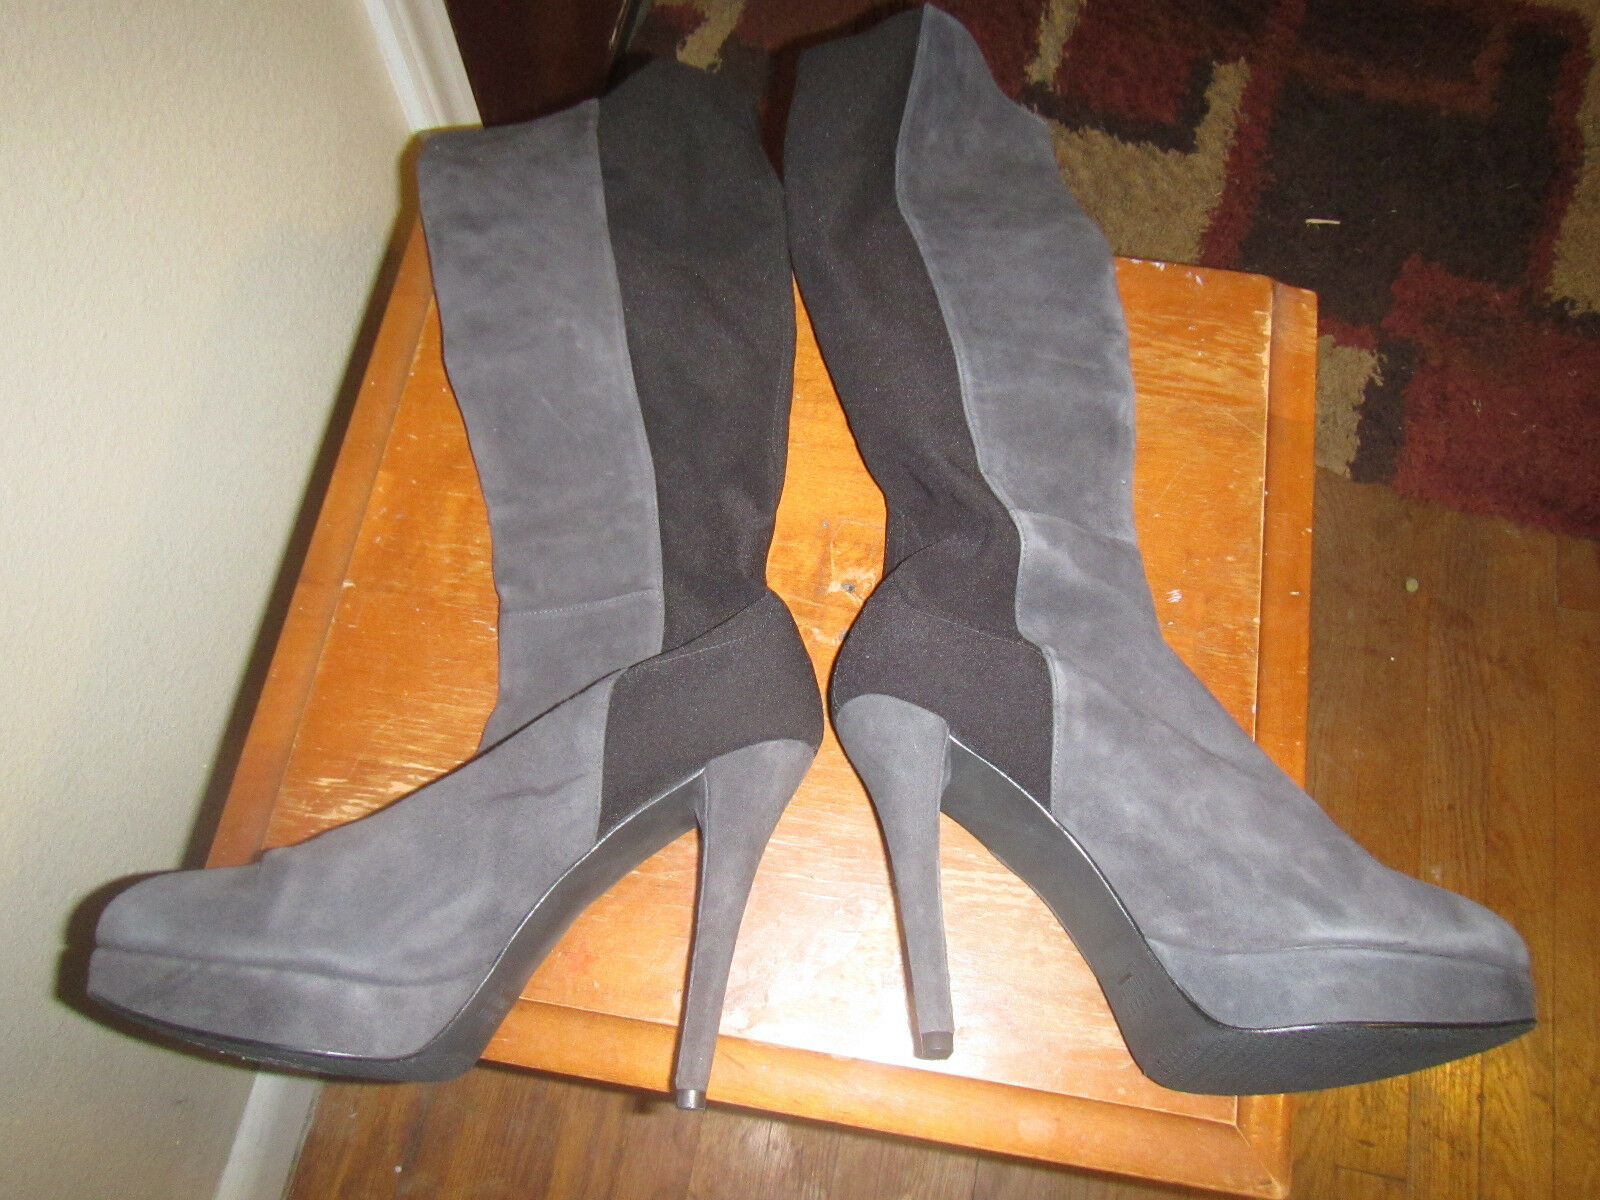 Stuart Weitzman OTK suede black new boots boots boots 10.5 high heel pull on 50 50 highline cffc60